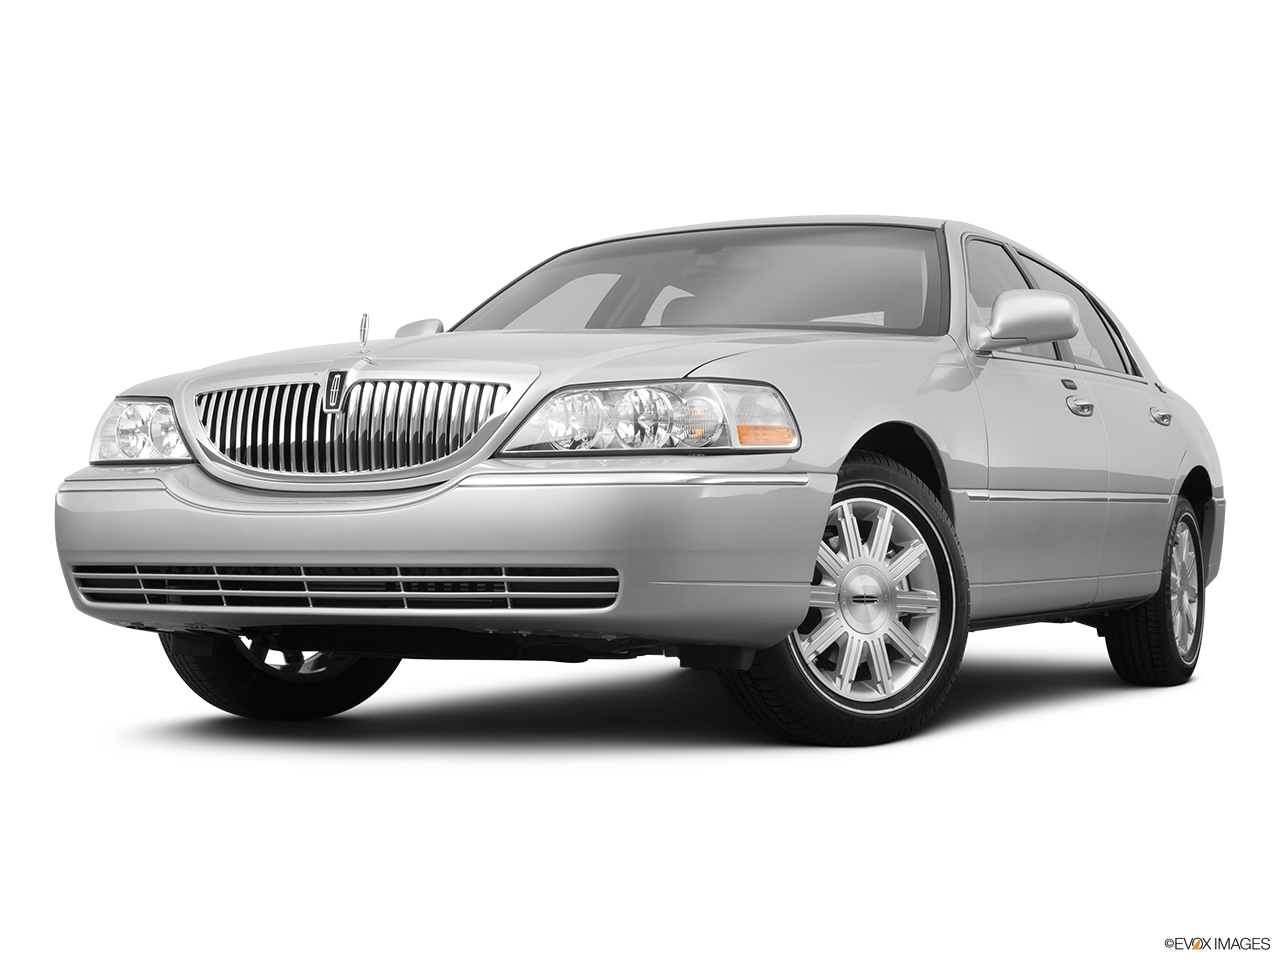 2011 Lincoln Town Car Signature Limited Front angle view, low wide perspective.